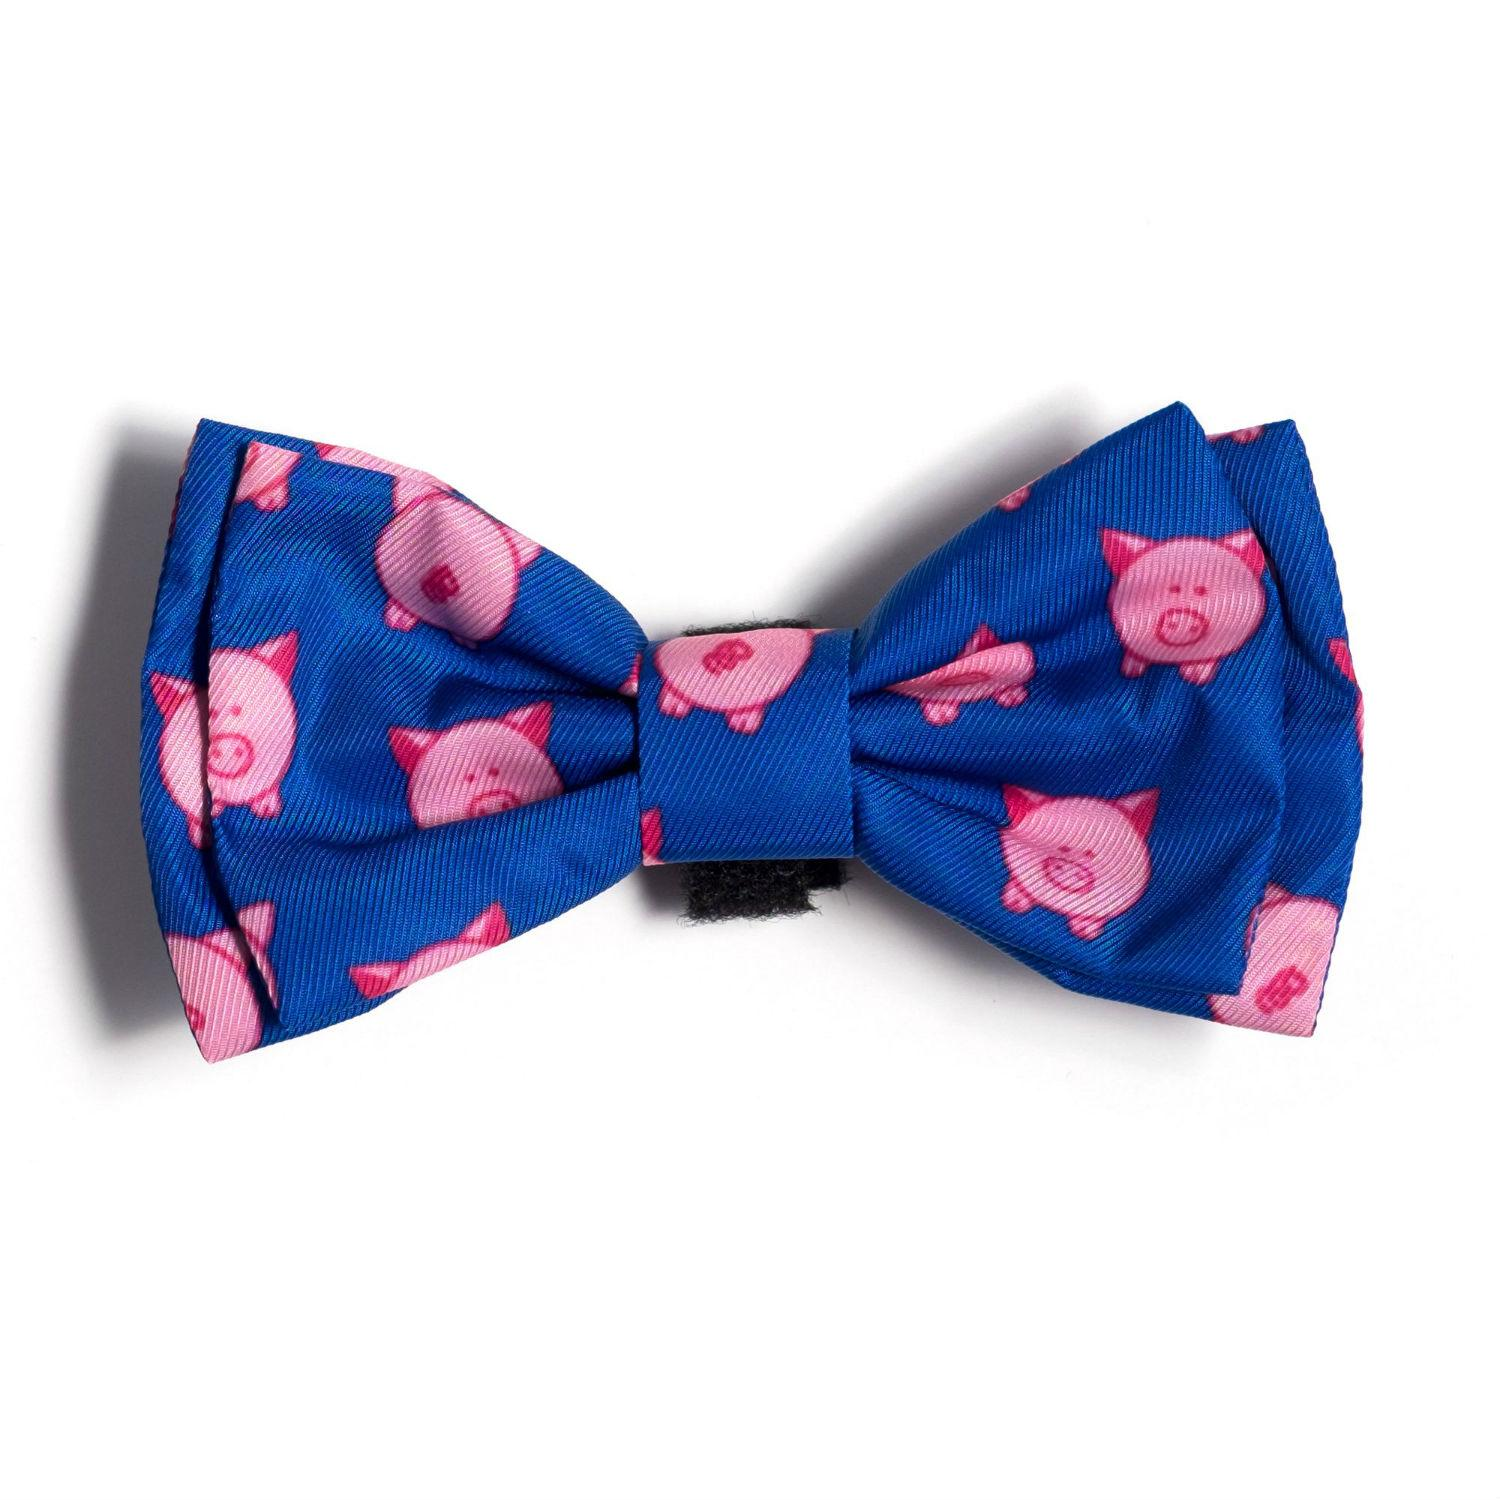 Worthy Dog Wilbur the Pig Dog and Cat Bow Tie Collar Attachment